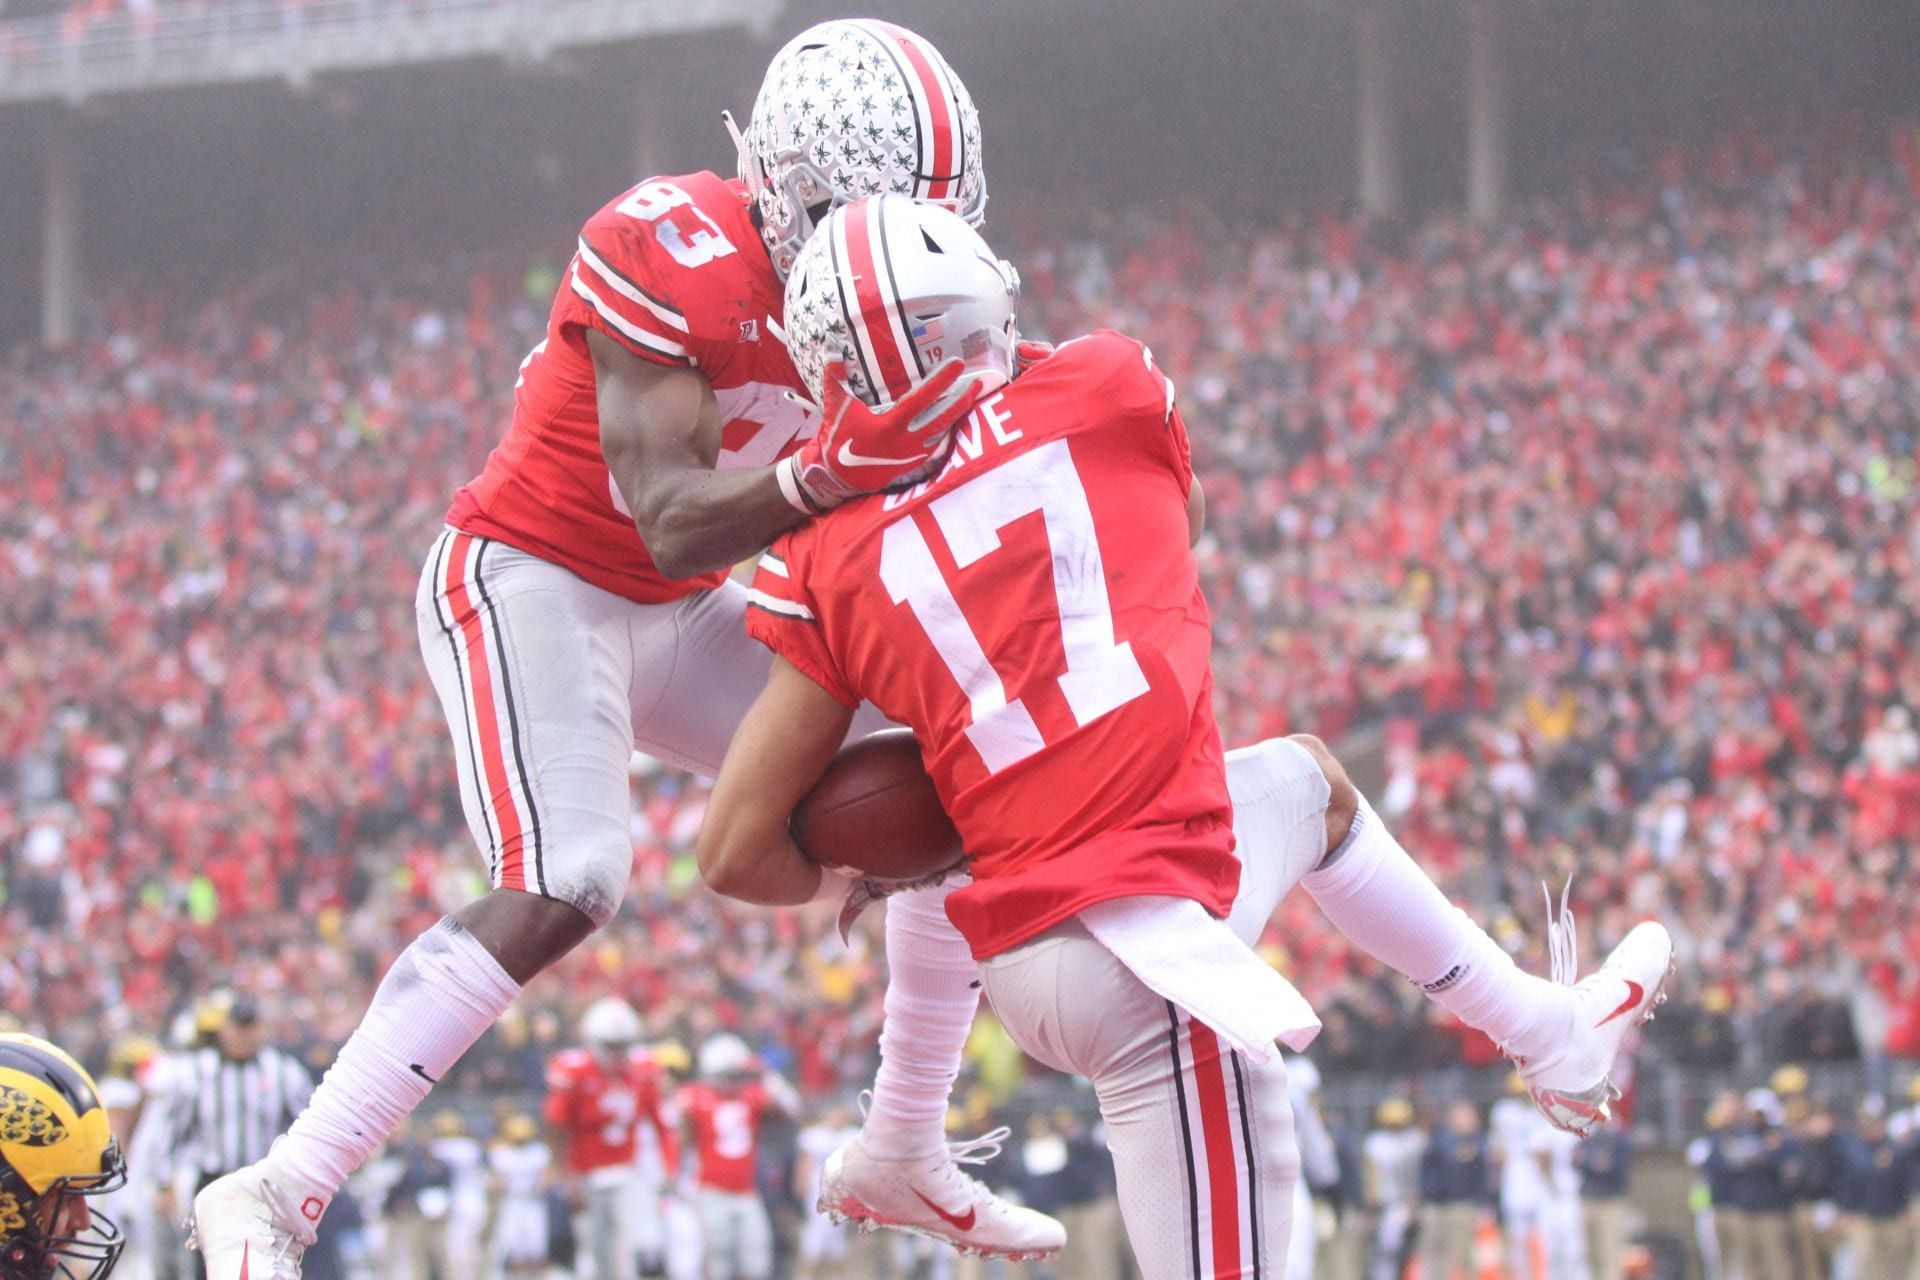 Football Olave S Unlikely Path To Potential Ohio State Stardom The Lantern